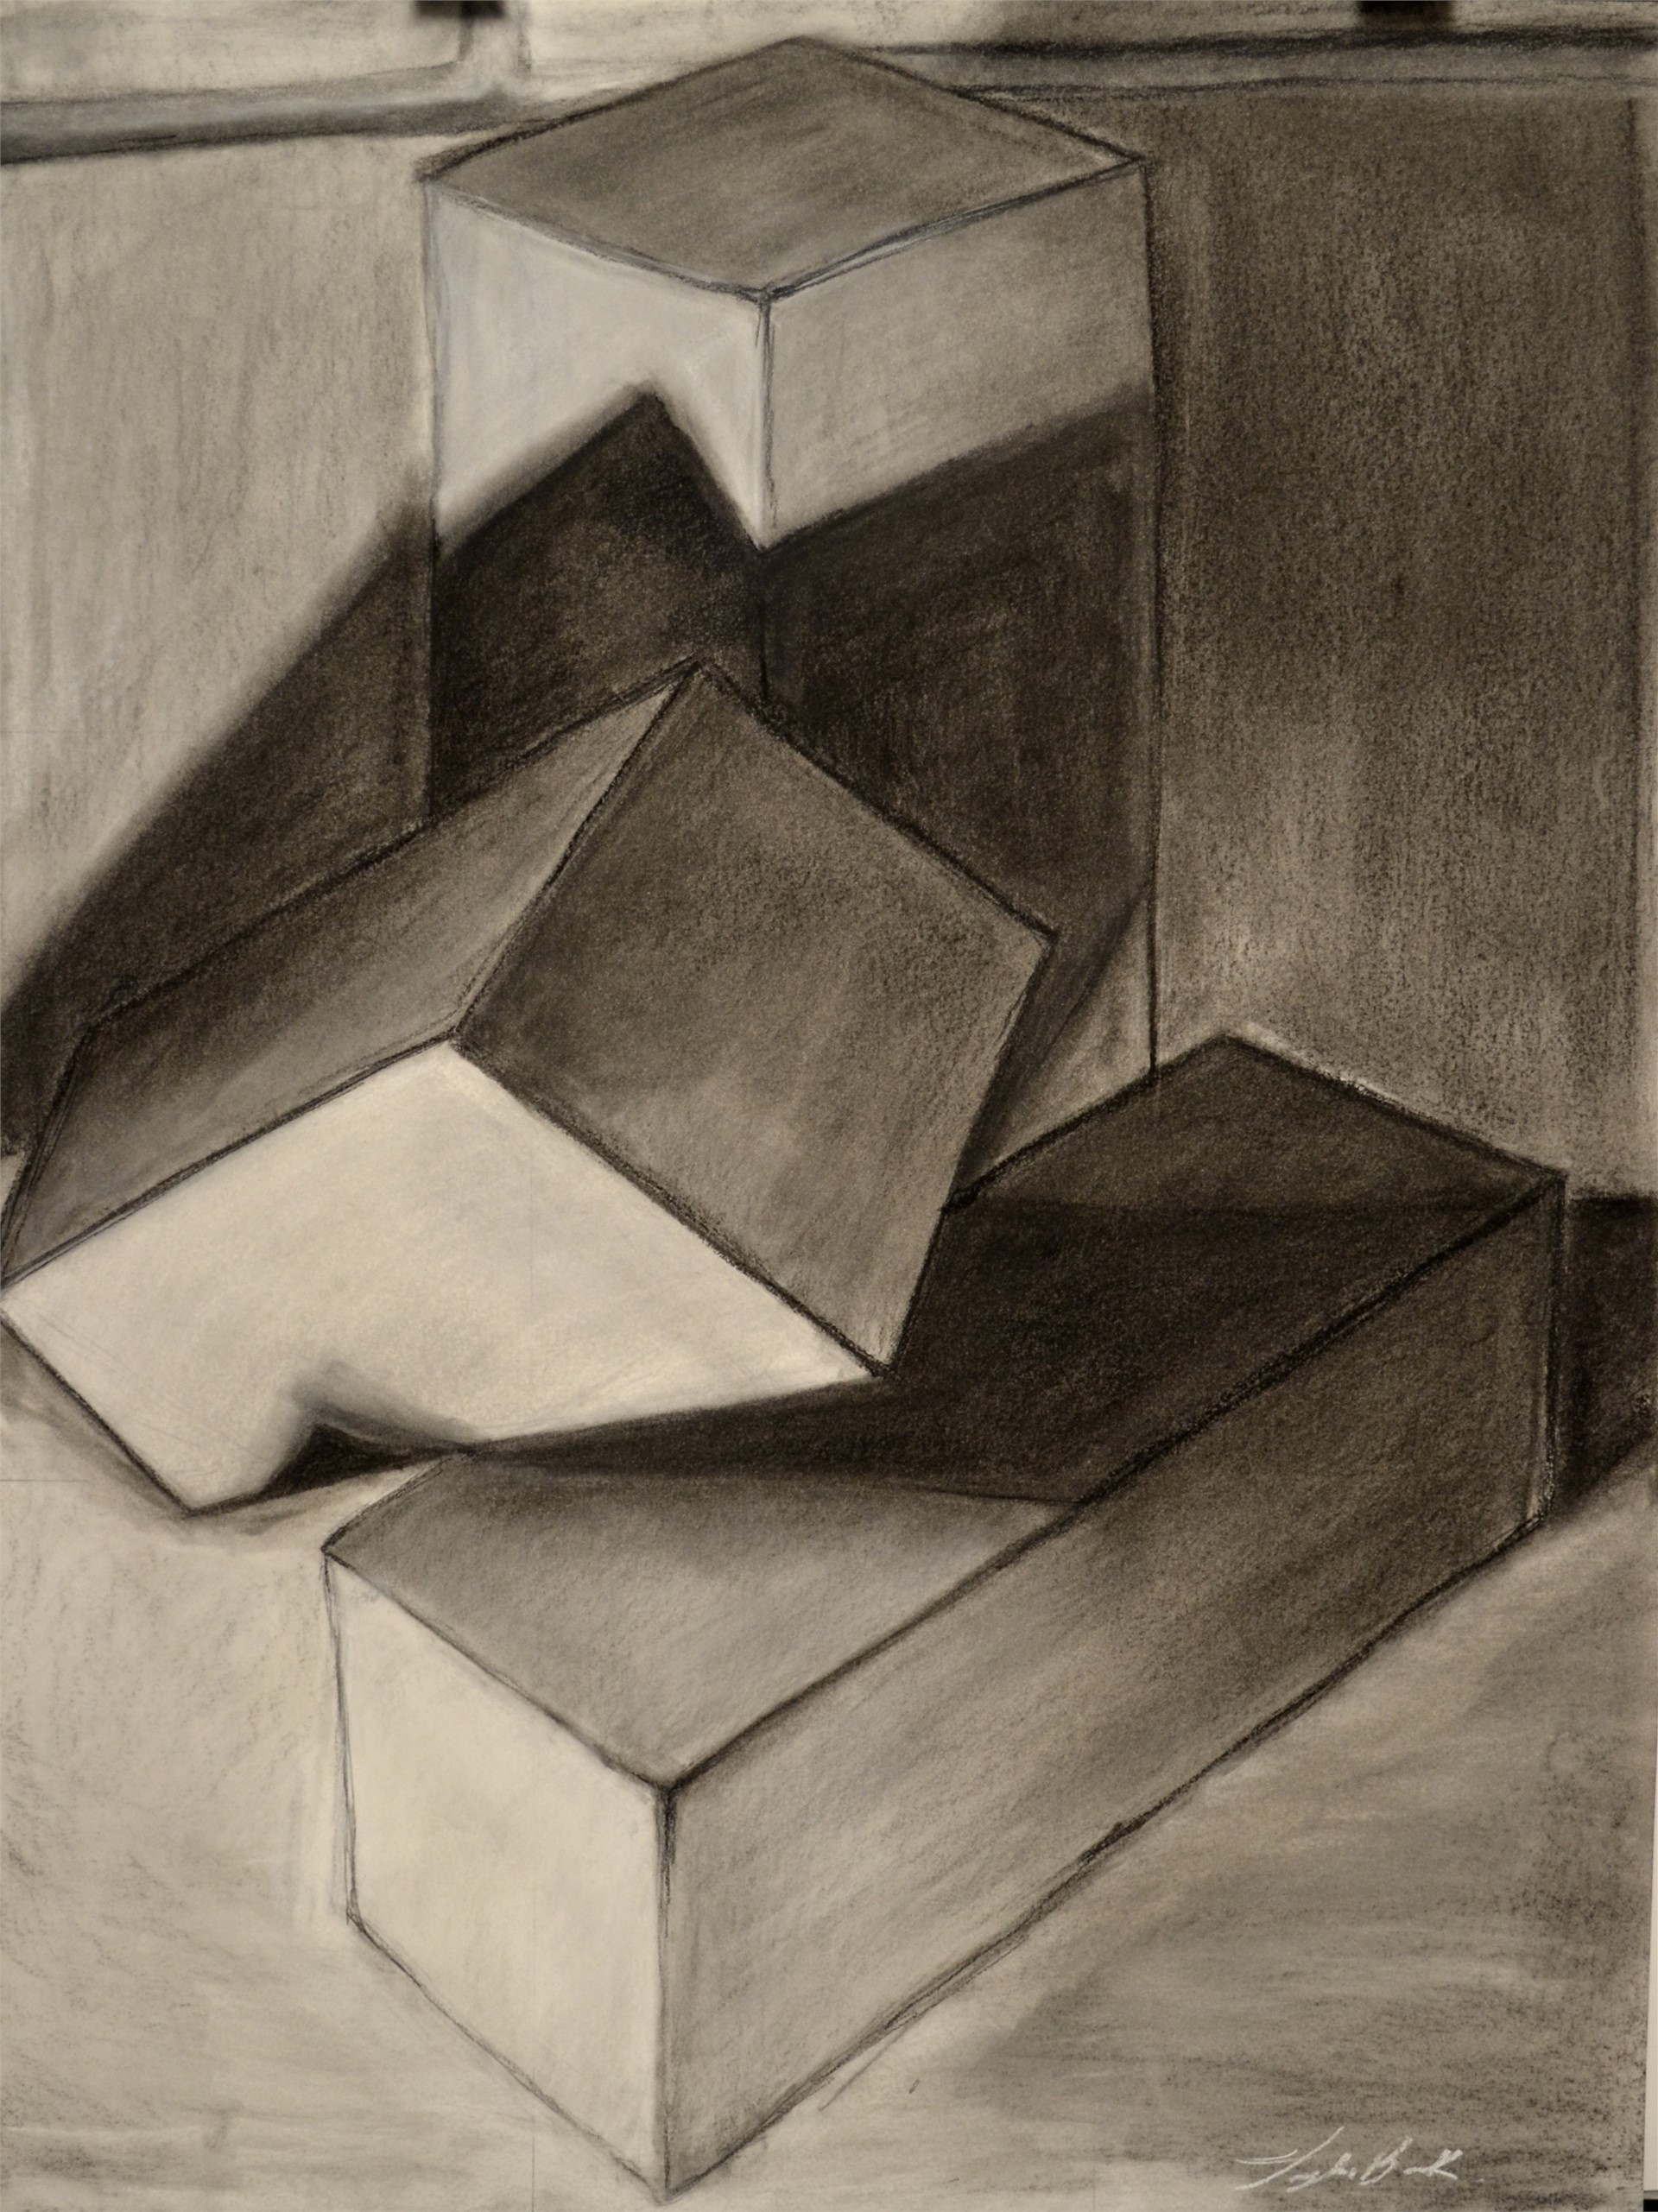 Taylor Bock, Rectilinear Prism Still-Life, charcoal, 24 x 18, 2015